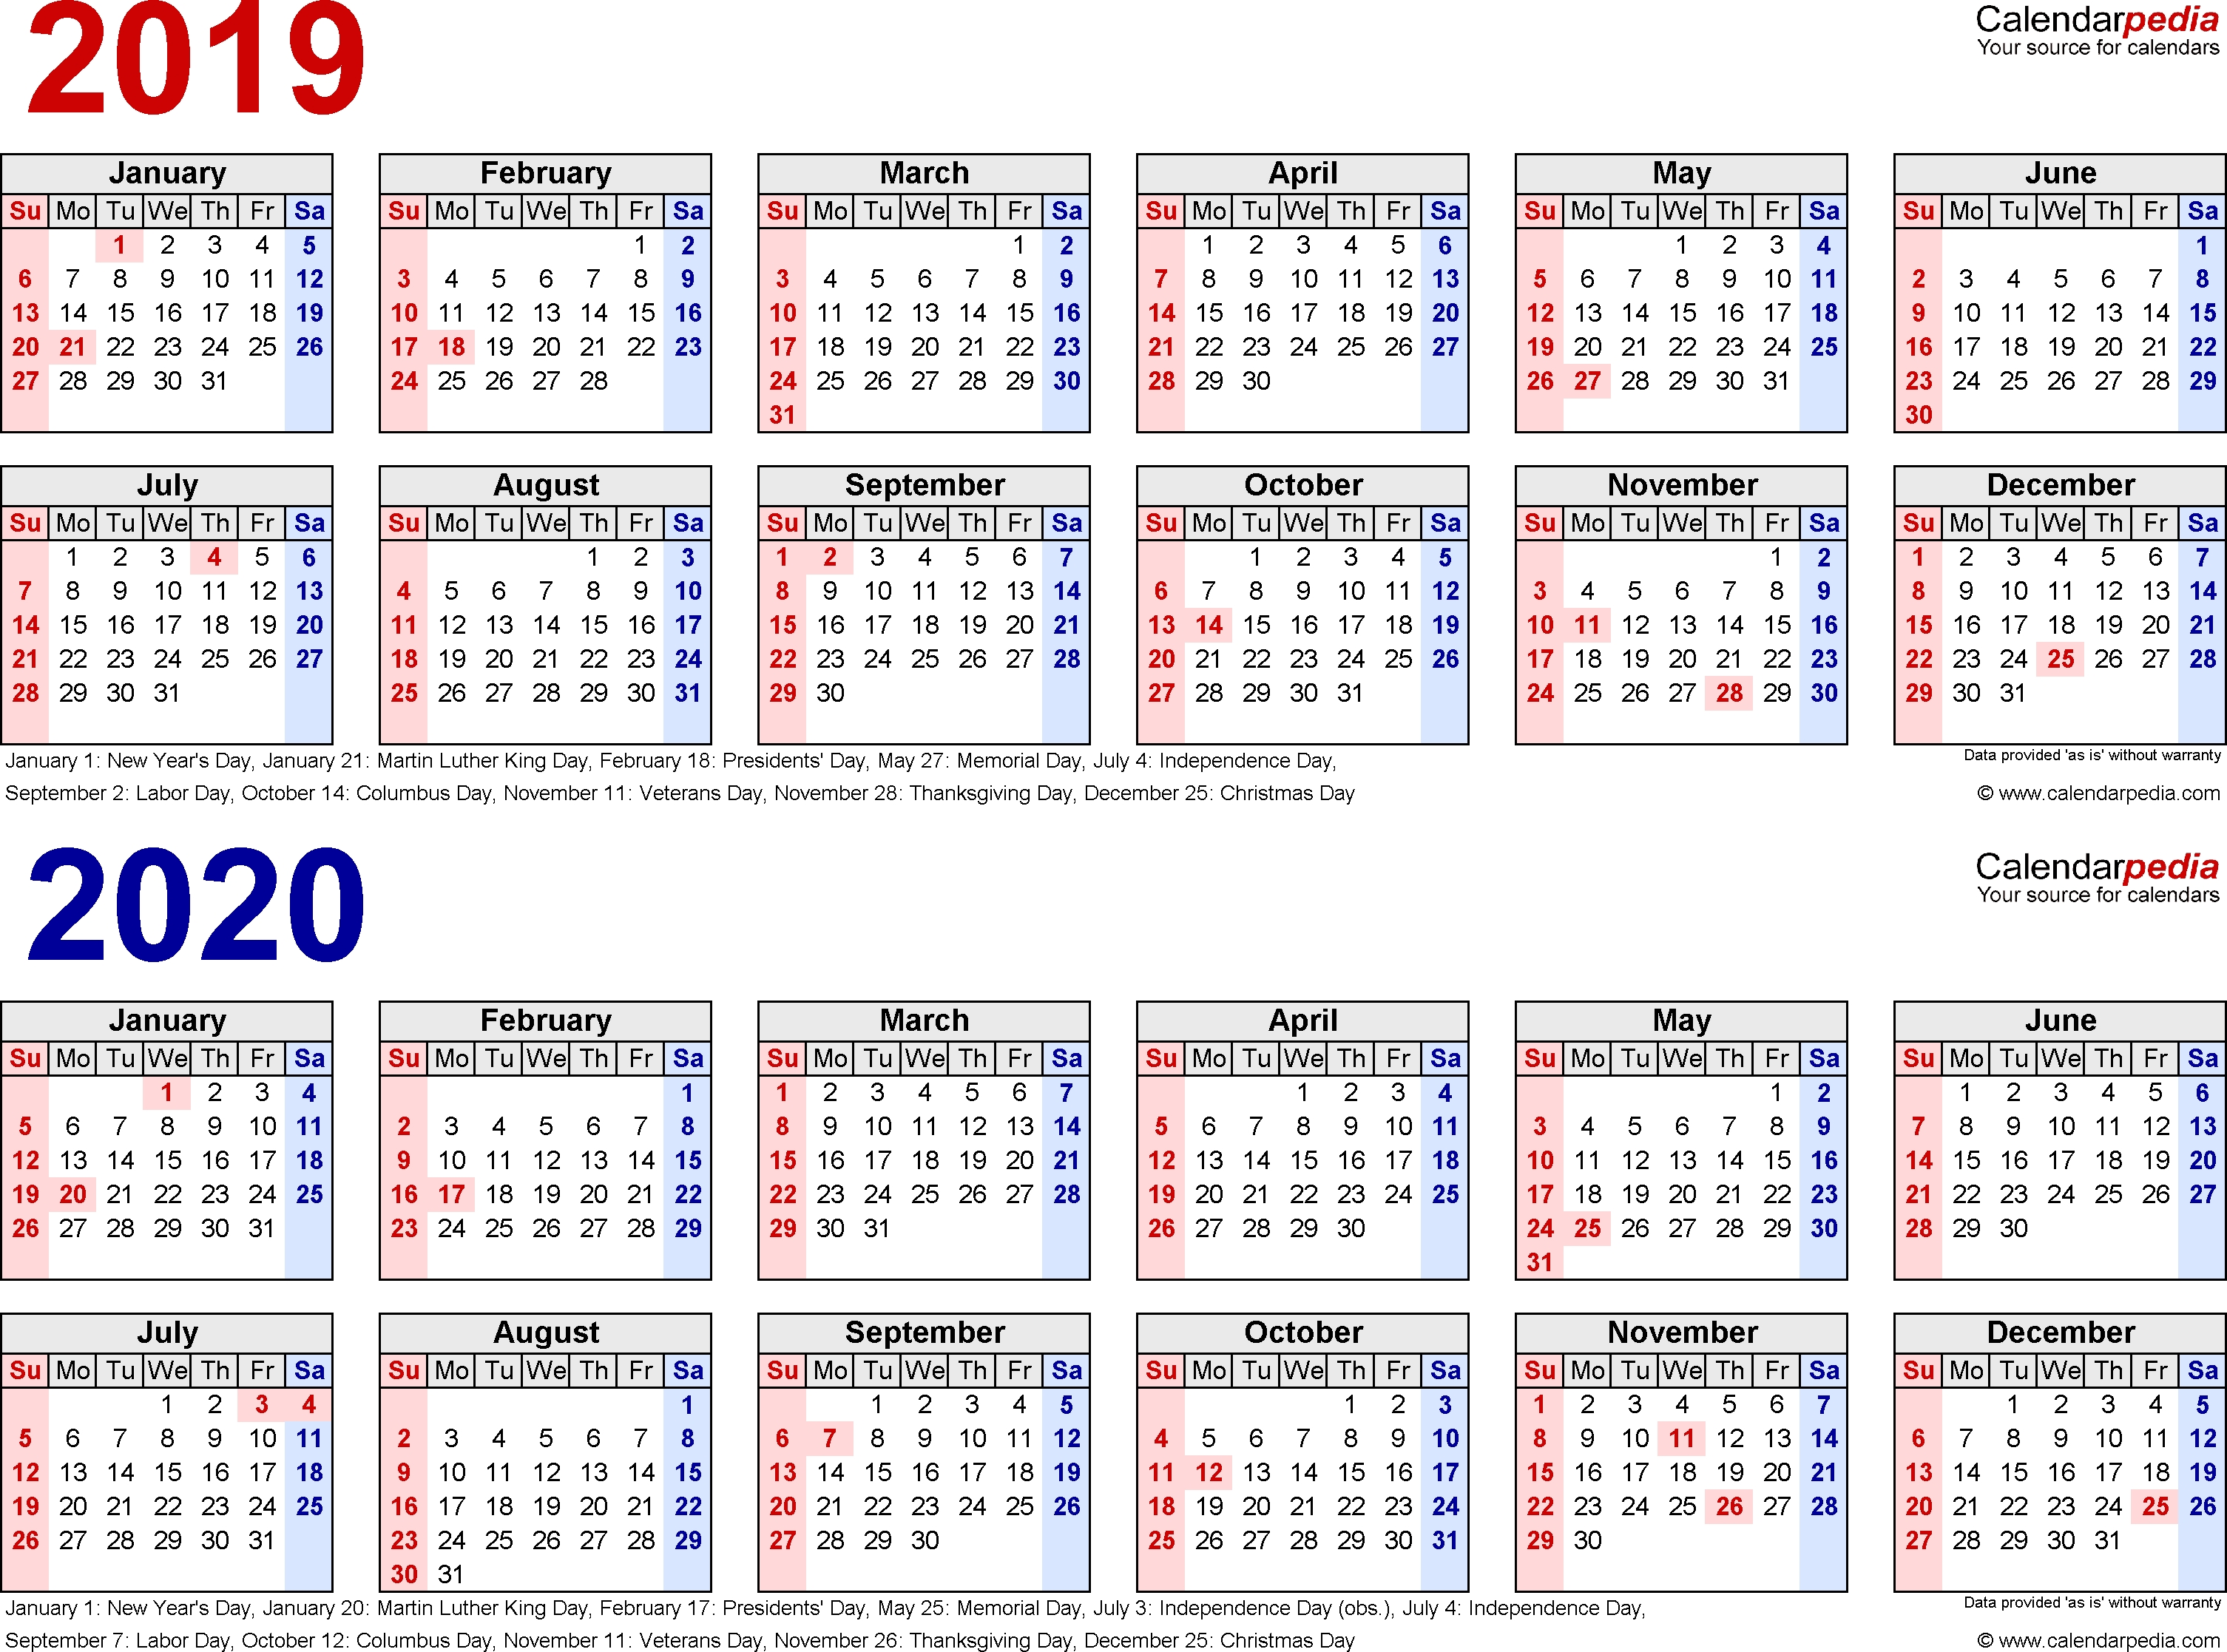 2019-2020 Calendar - Free Printable Two-Year Excel Calendars with Printable Customizable Calander 2019-2020